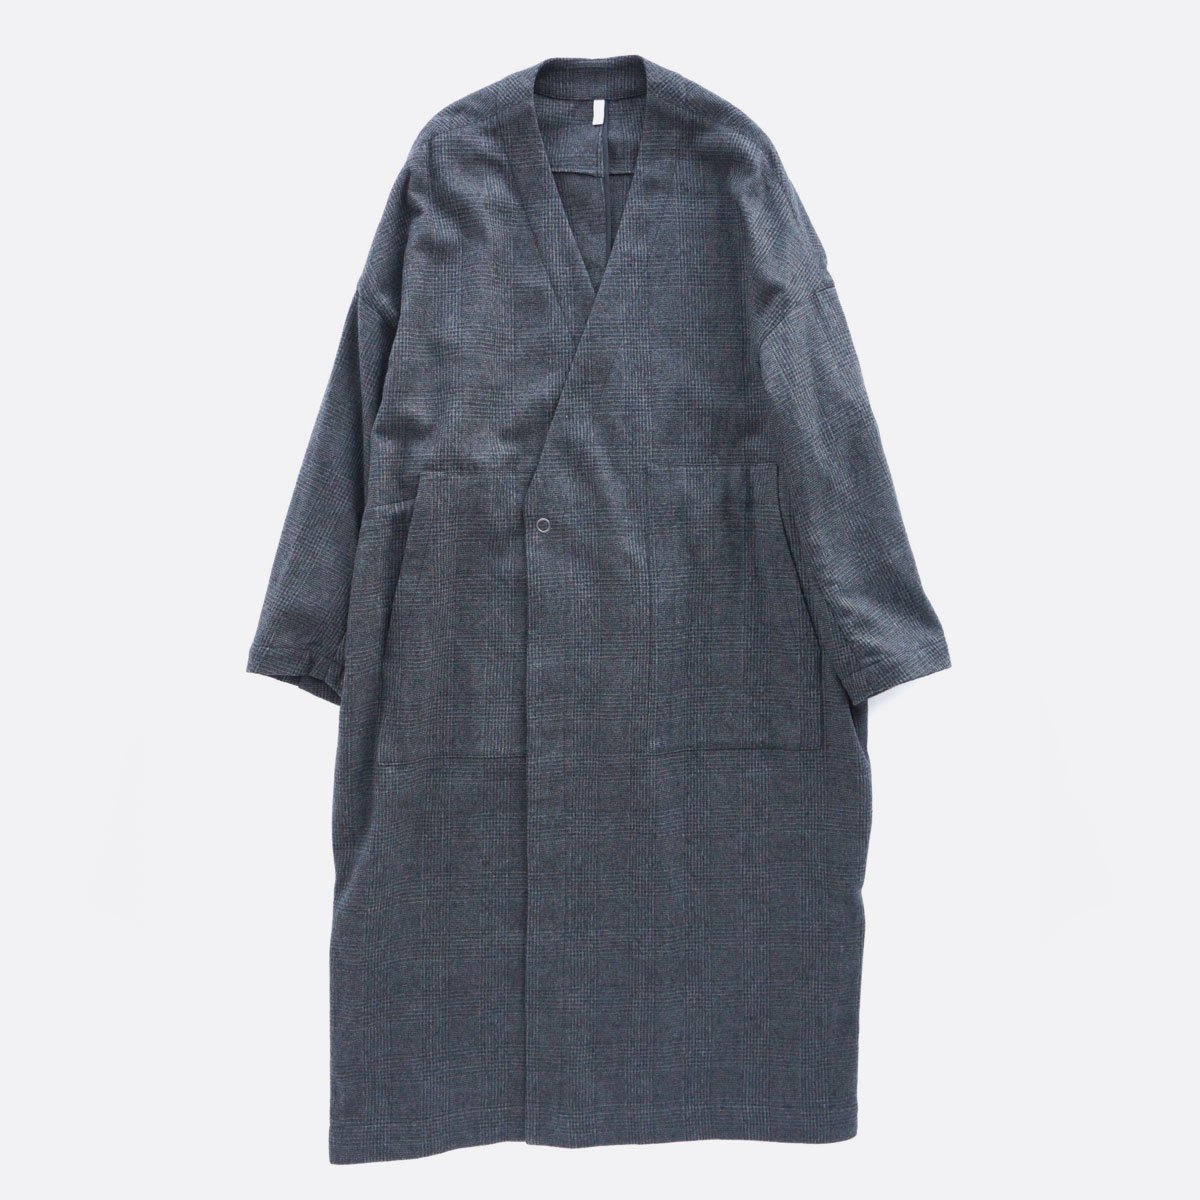 FIRMUM MILLING WOOL & COTTON TWILL COAT (GREY&BLACK/CH)